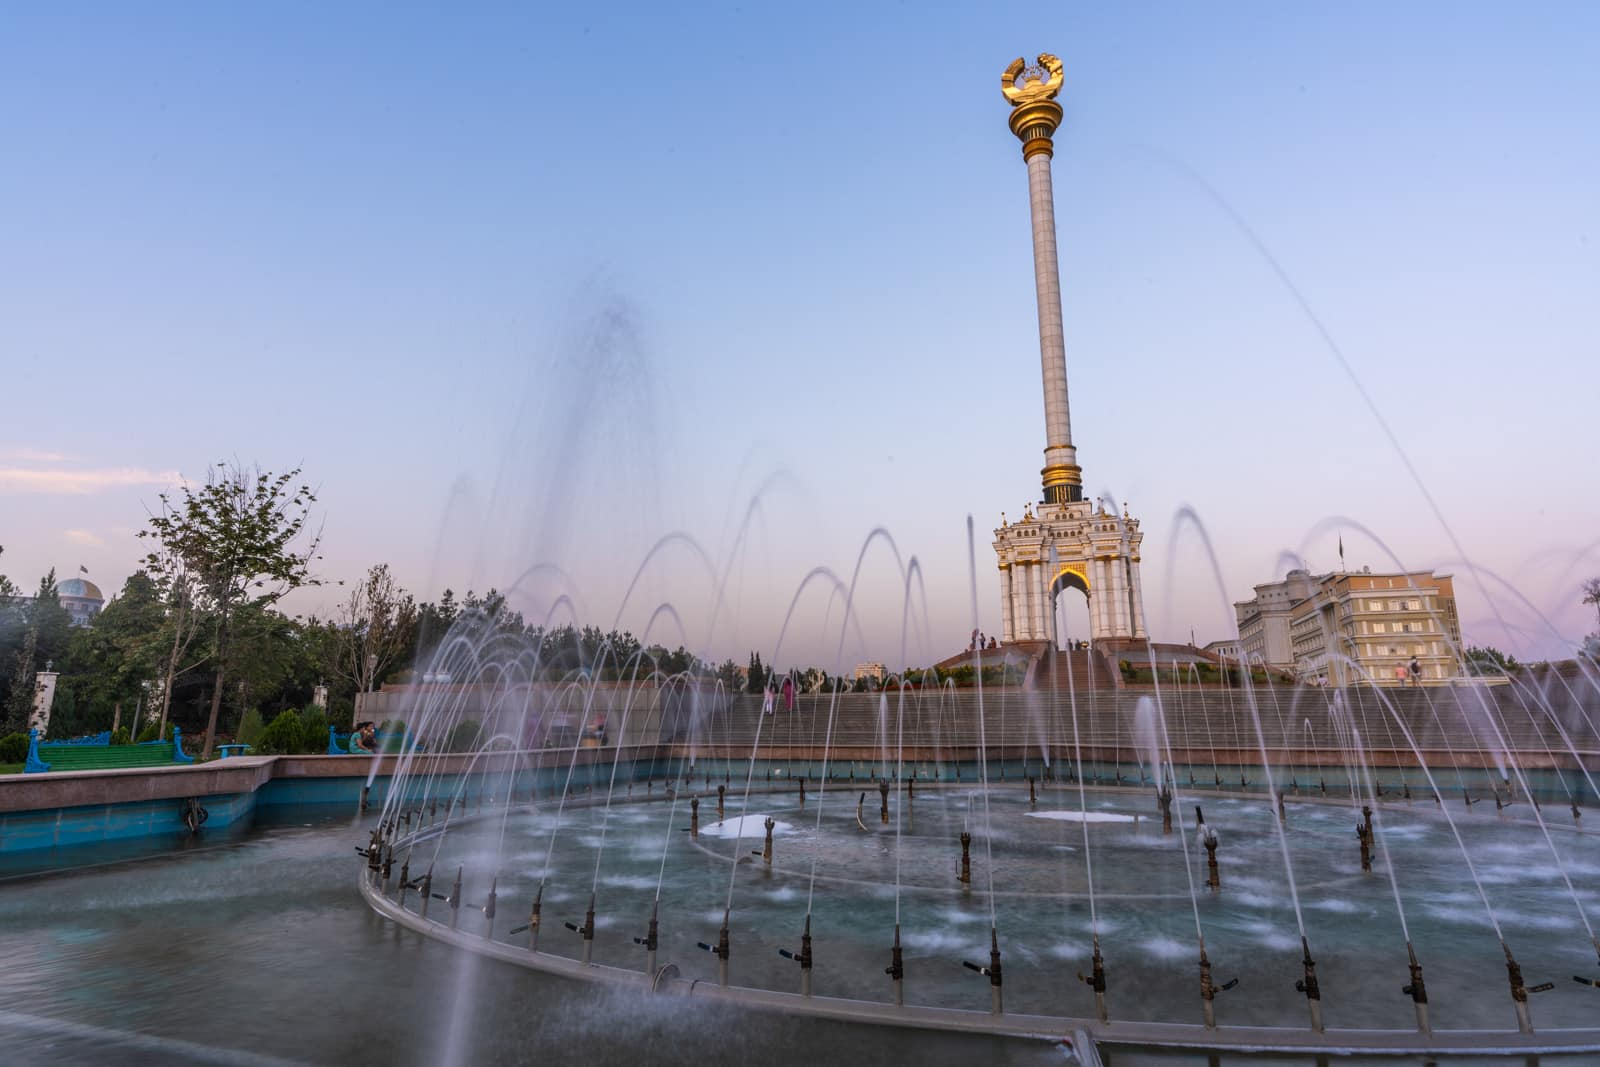 Fountains in front of Independence Monument in Dushanbe, Tajikistan